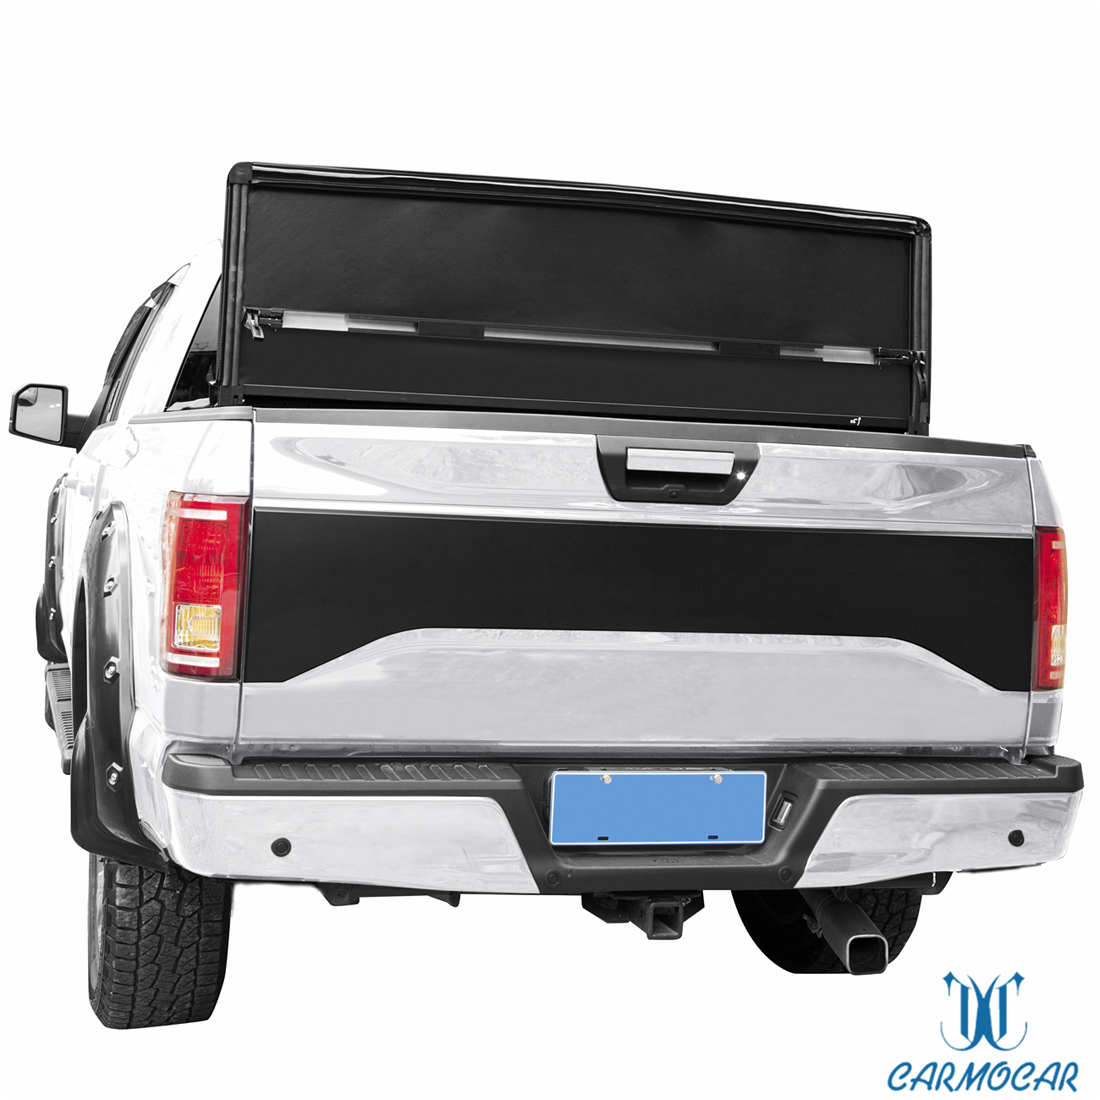 Fit For 2009 2014 Ford F 150 5 5ft Bed T3 Tri Fold Tonneau Cover Jdmspeed Furnacerestaurant Co Nz